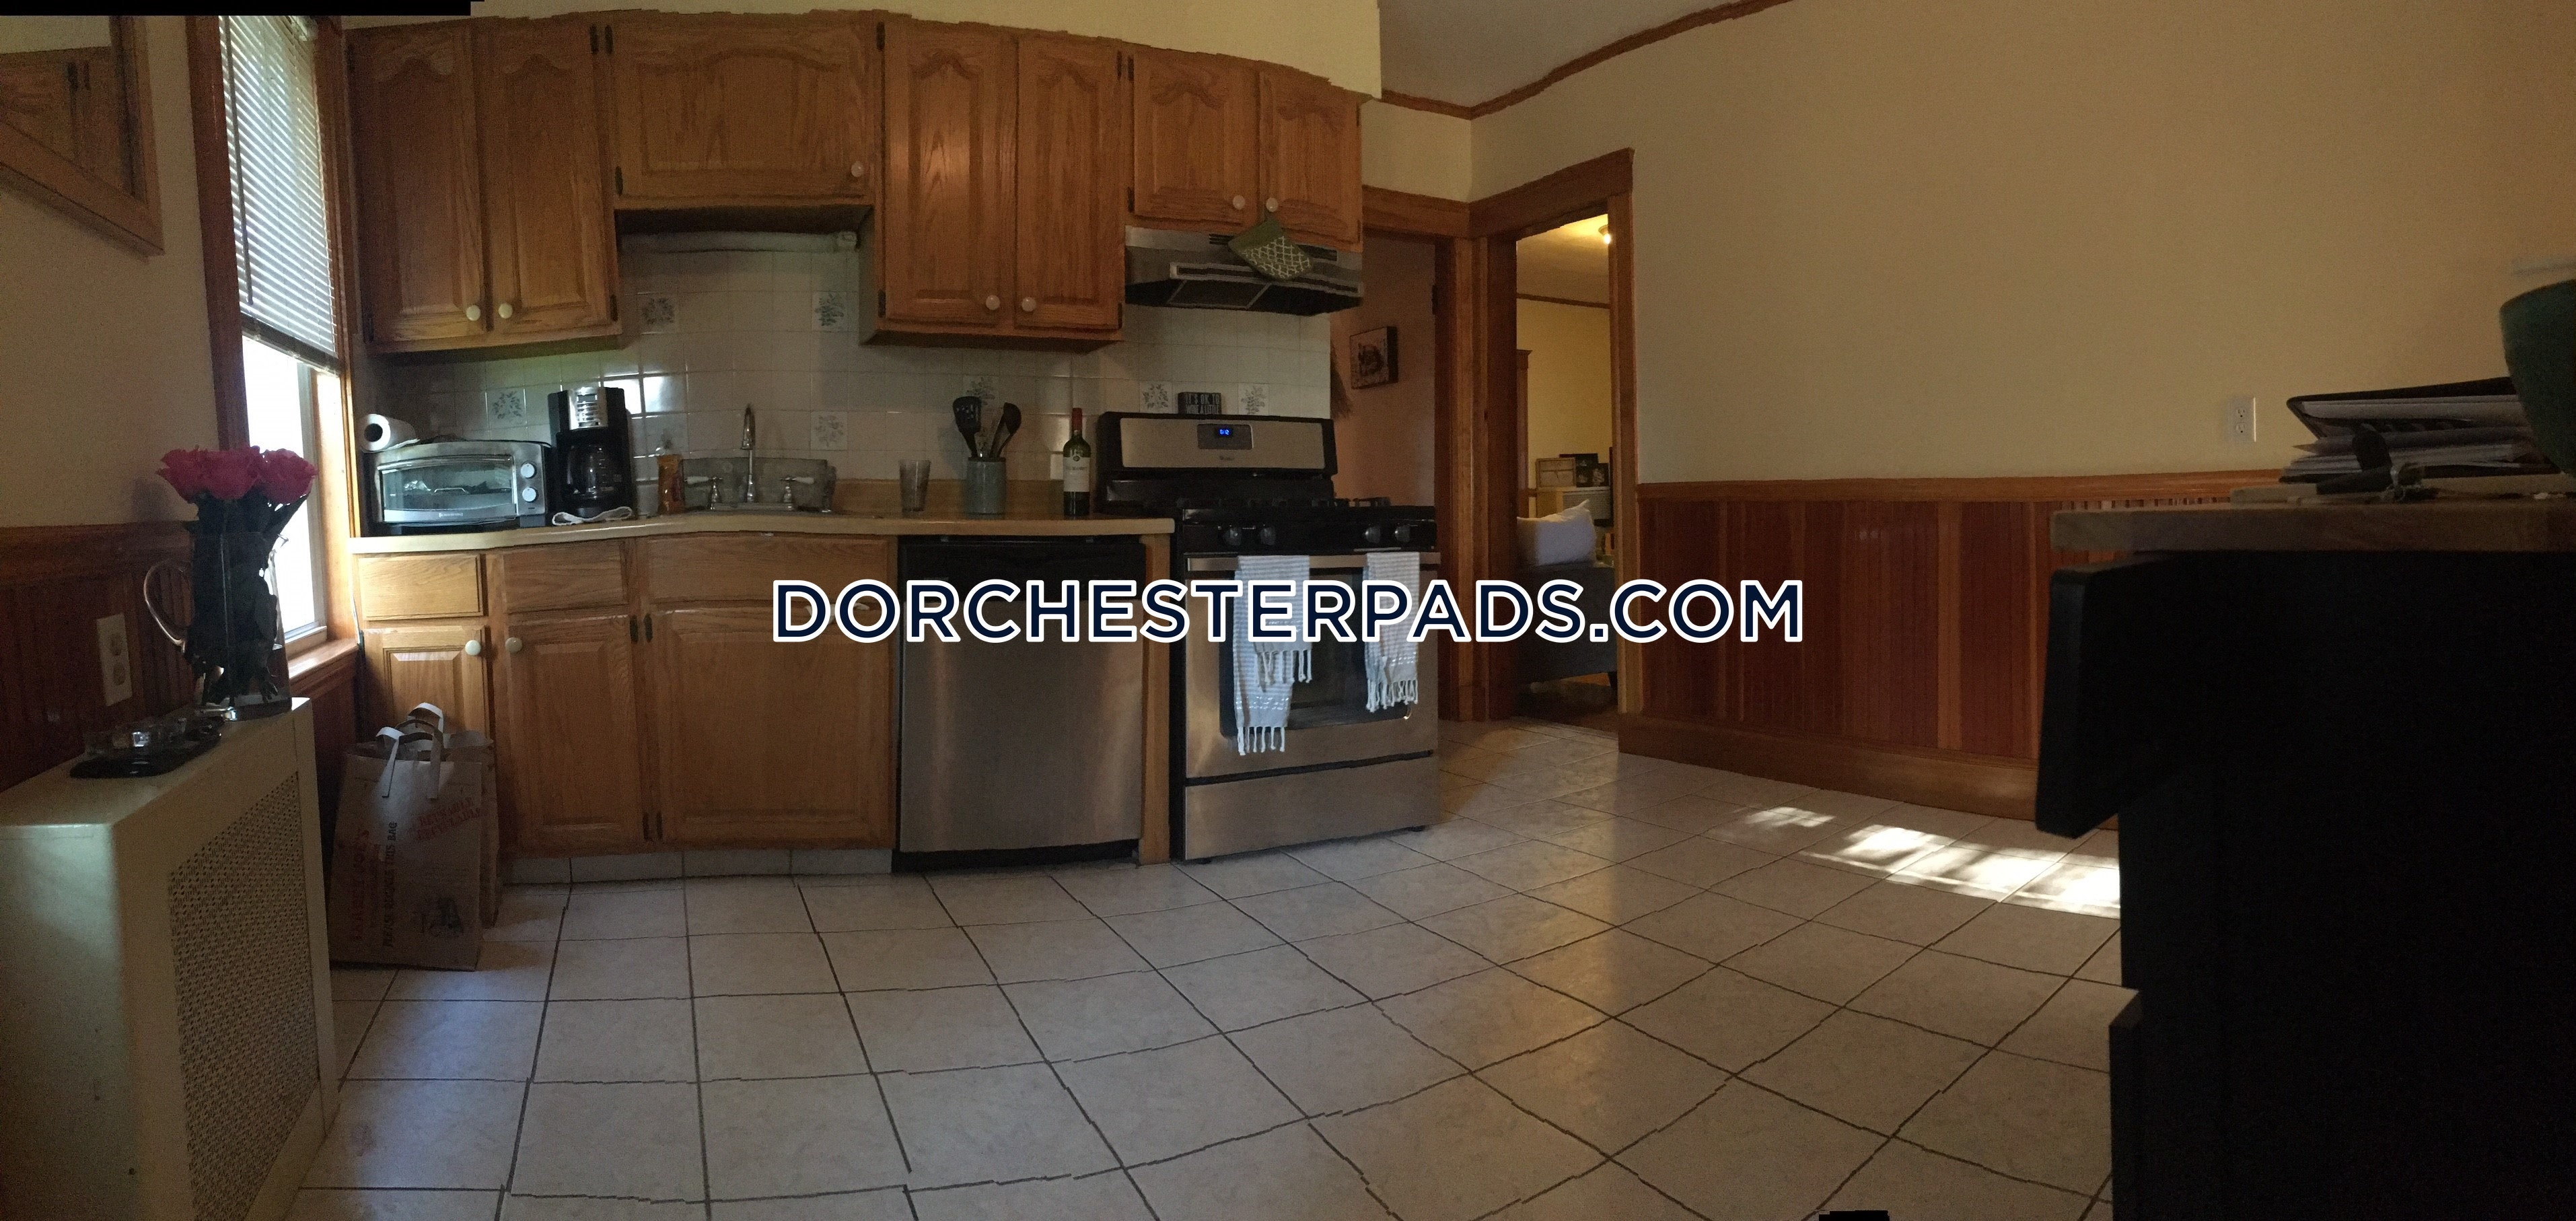 Apartments for Rent in Roslindale MA | 2 Beds 1 Bath - Boston ...